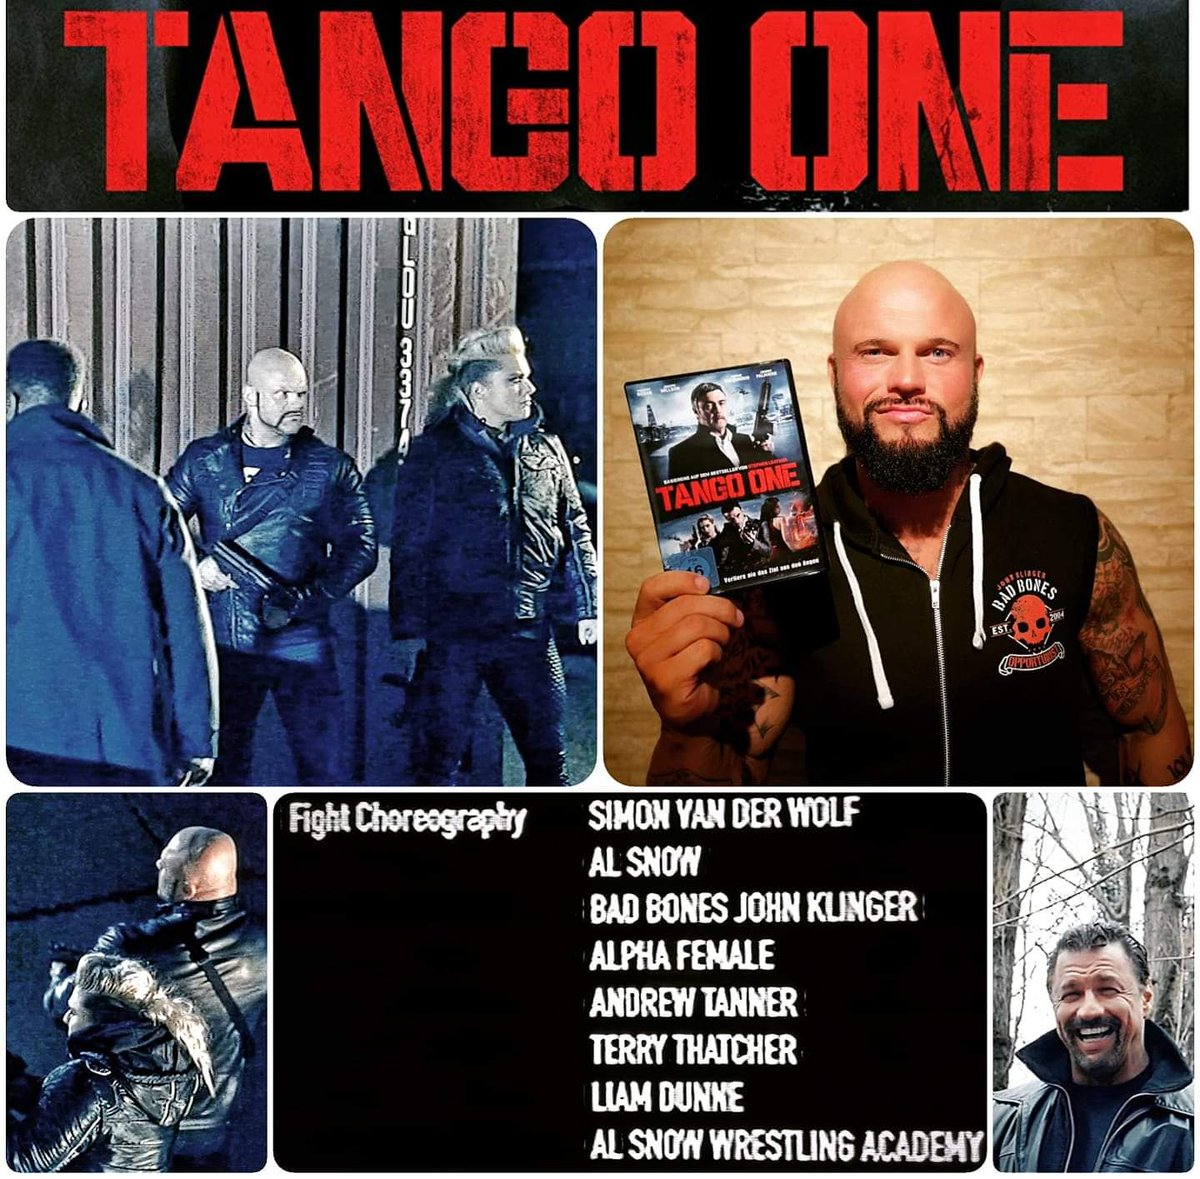 Just watched #TangoOne the #AMAZING Movie produced by Universal Pictures & @ThreeWMonkeys presented by Universum FilmI guess @therealalsnow @jazzygabert & myself turned Heel #universalpictures #universal #threewisemonkeys #universum#movie #dvd #production #actor #stuntman #aew